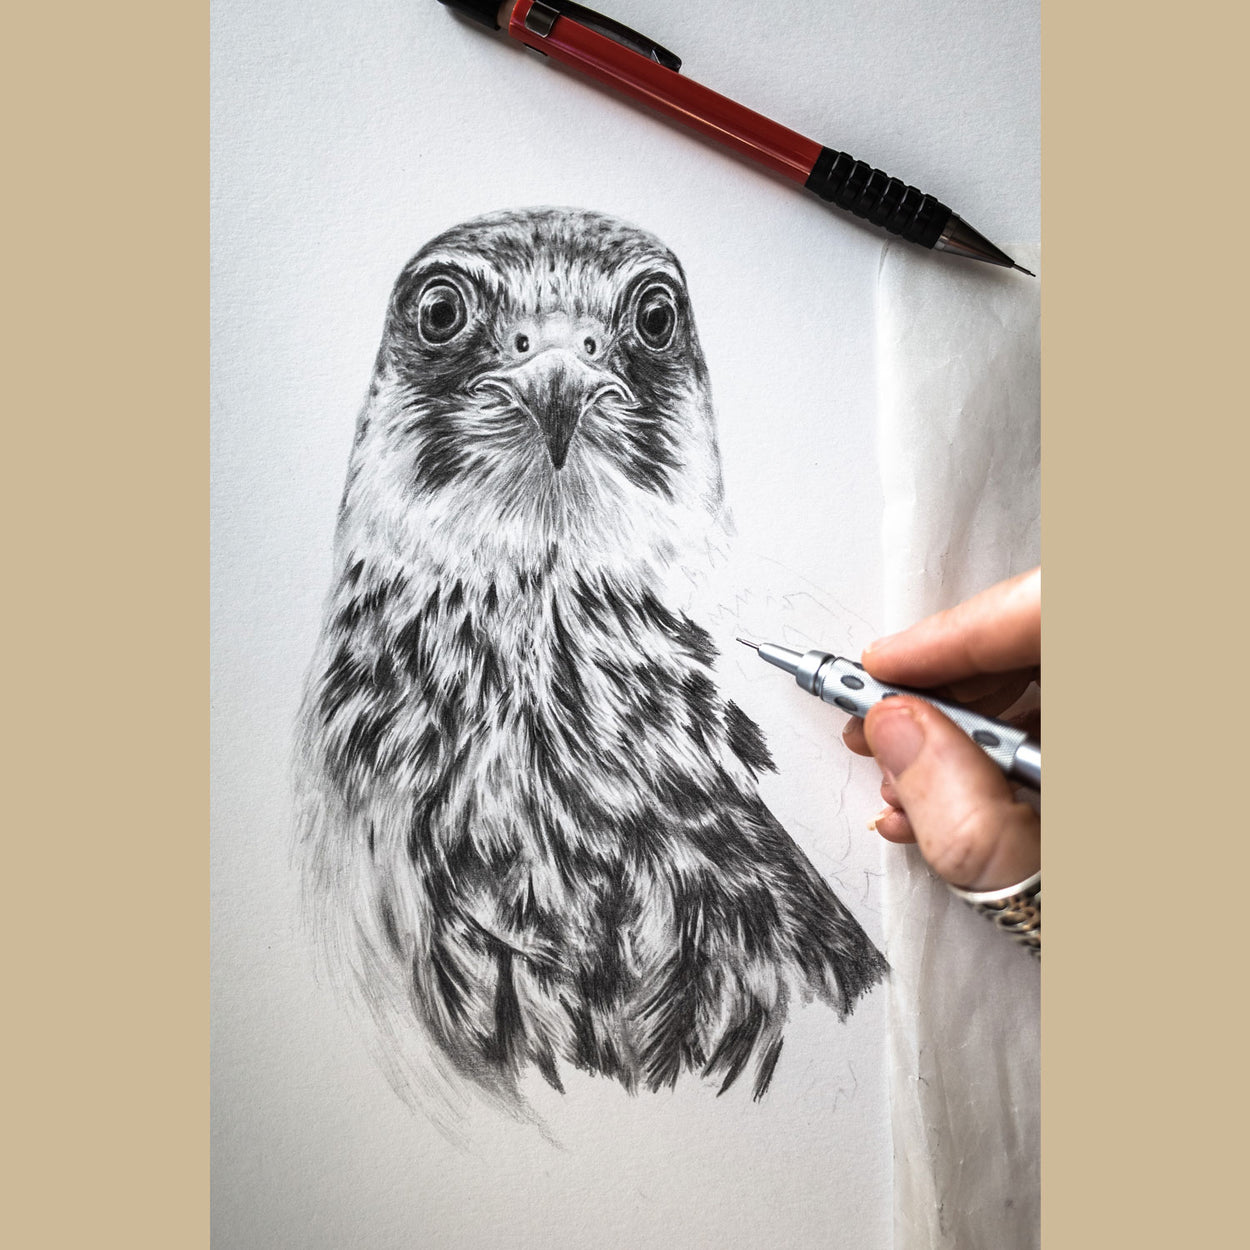 Hobby Pencil Drawing in Progress - The Thriving Wild